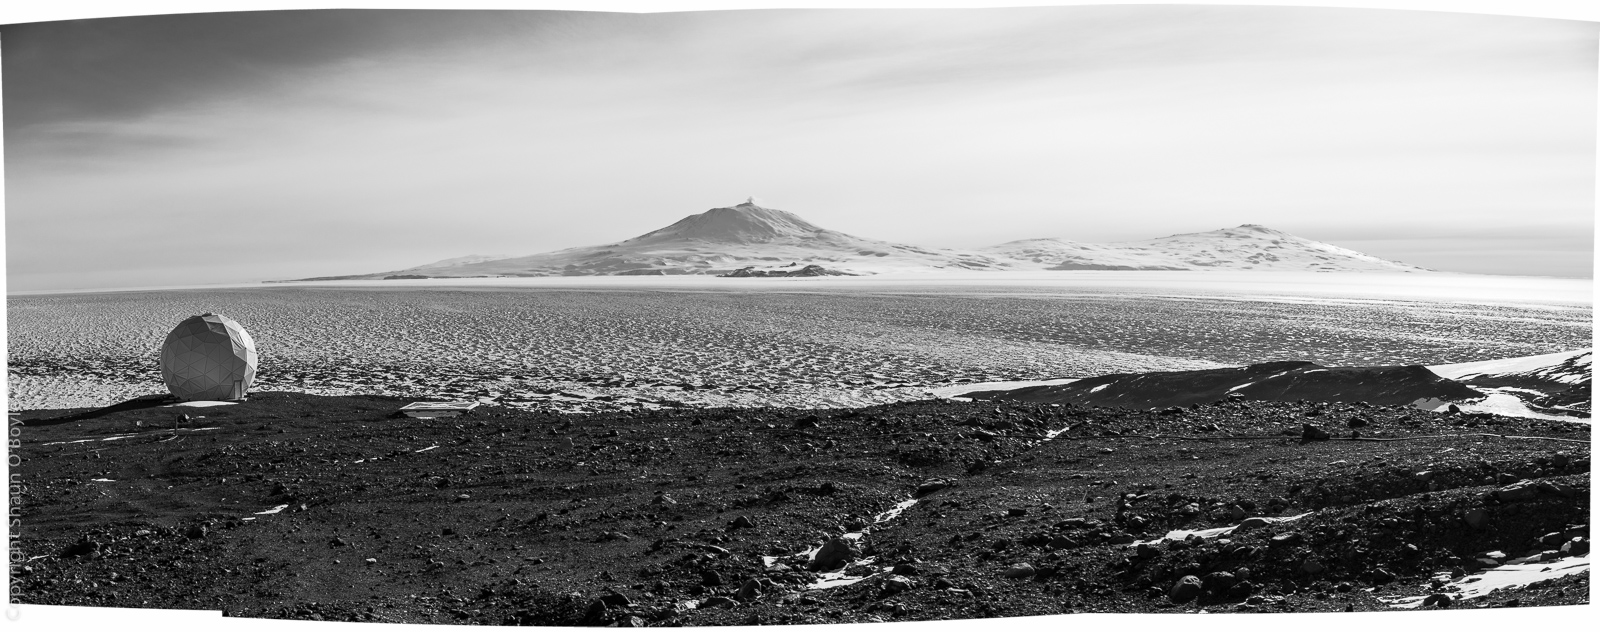 Station communication dome. Ross Island and McMurdo in the distance.distance